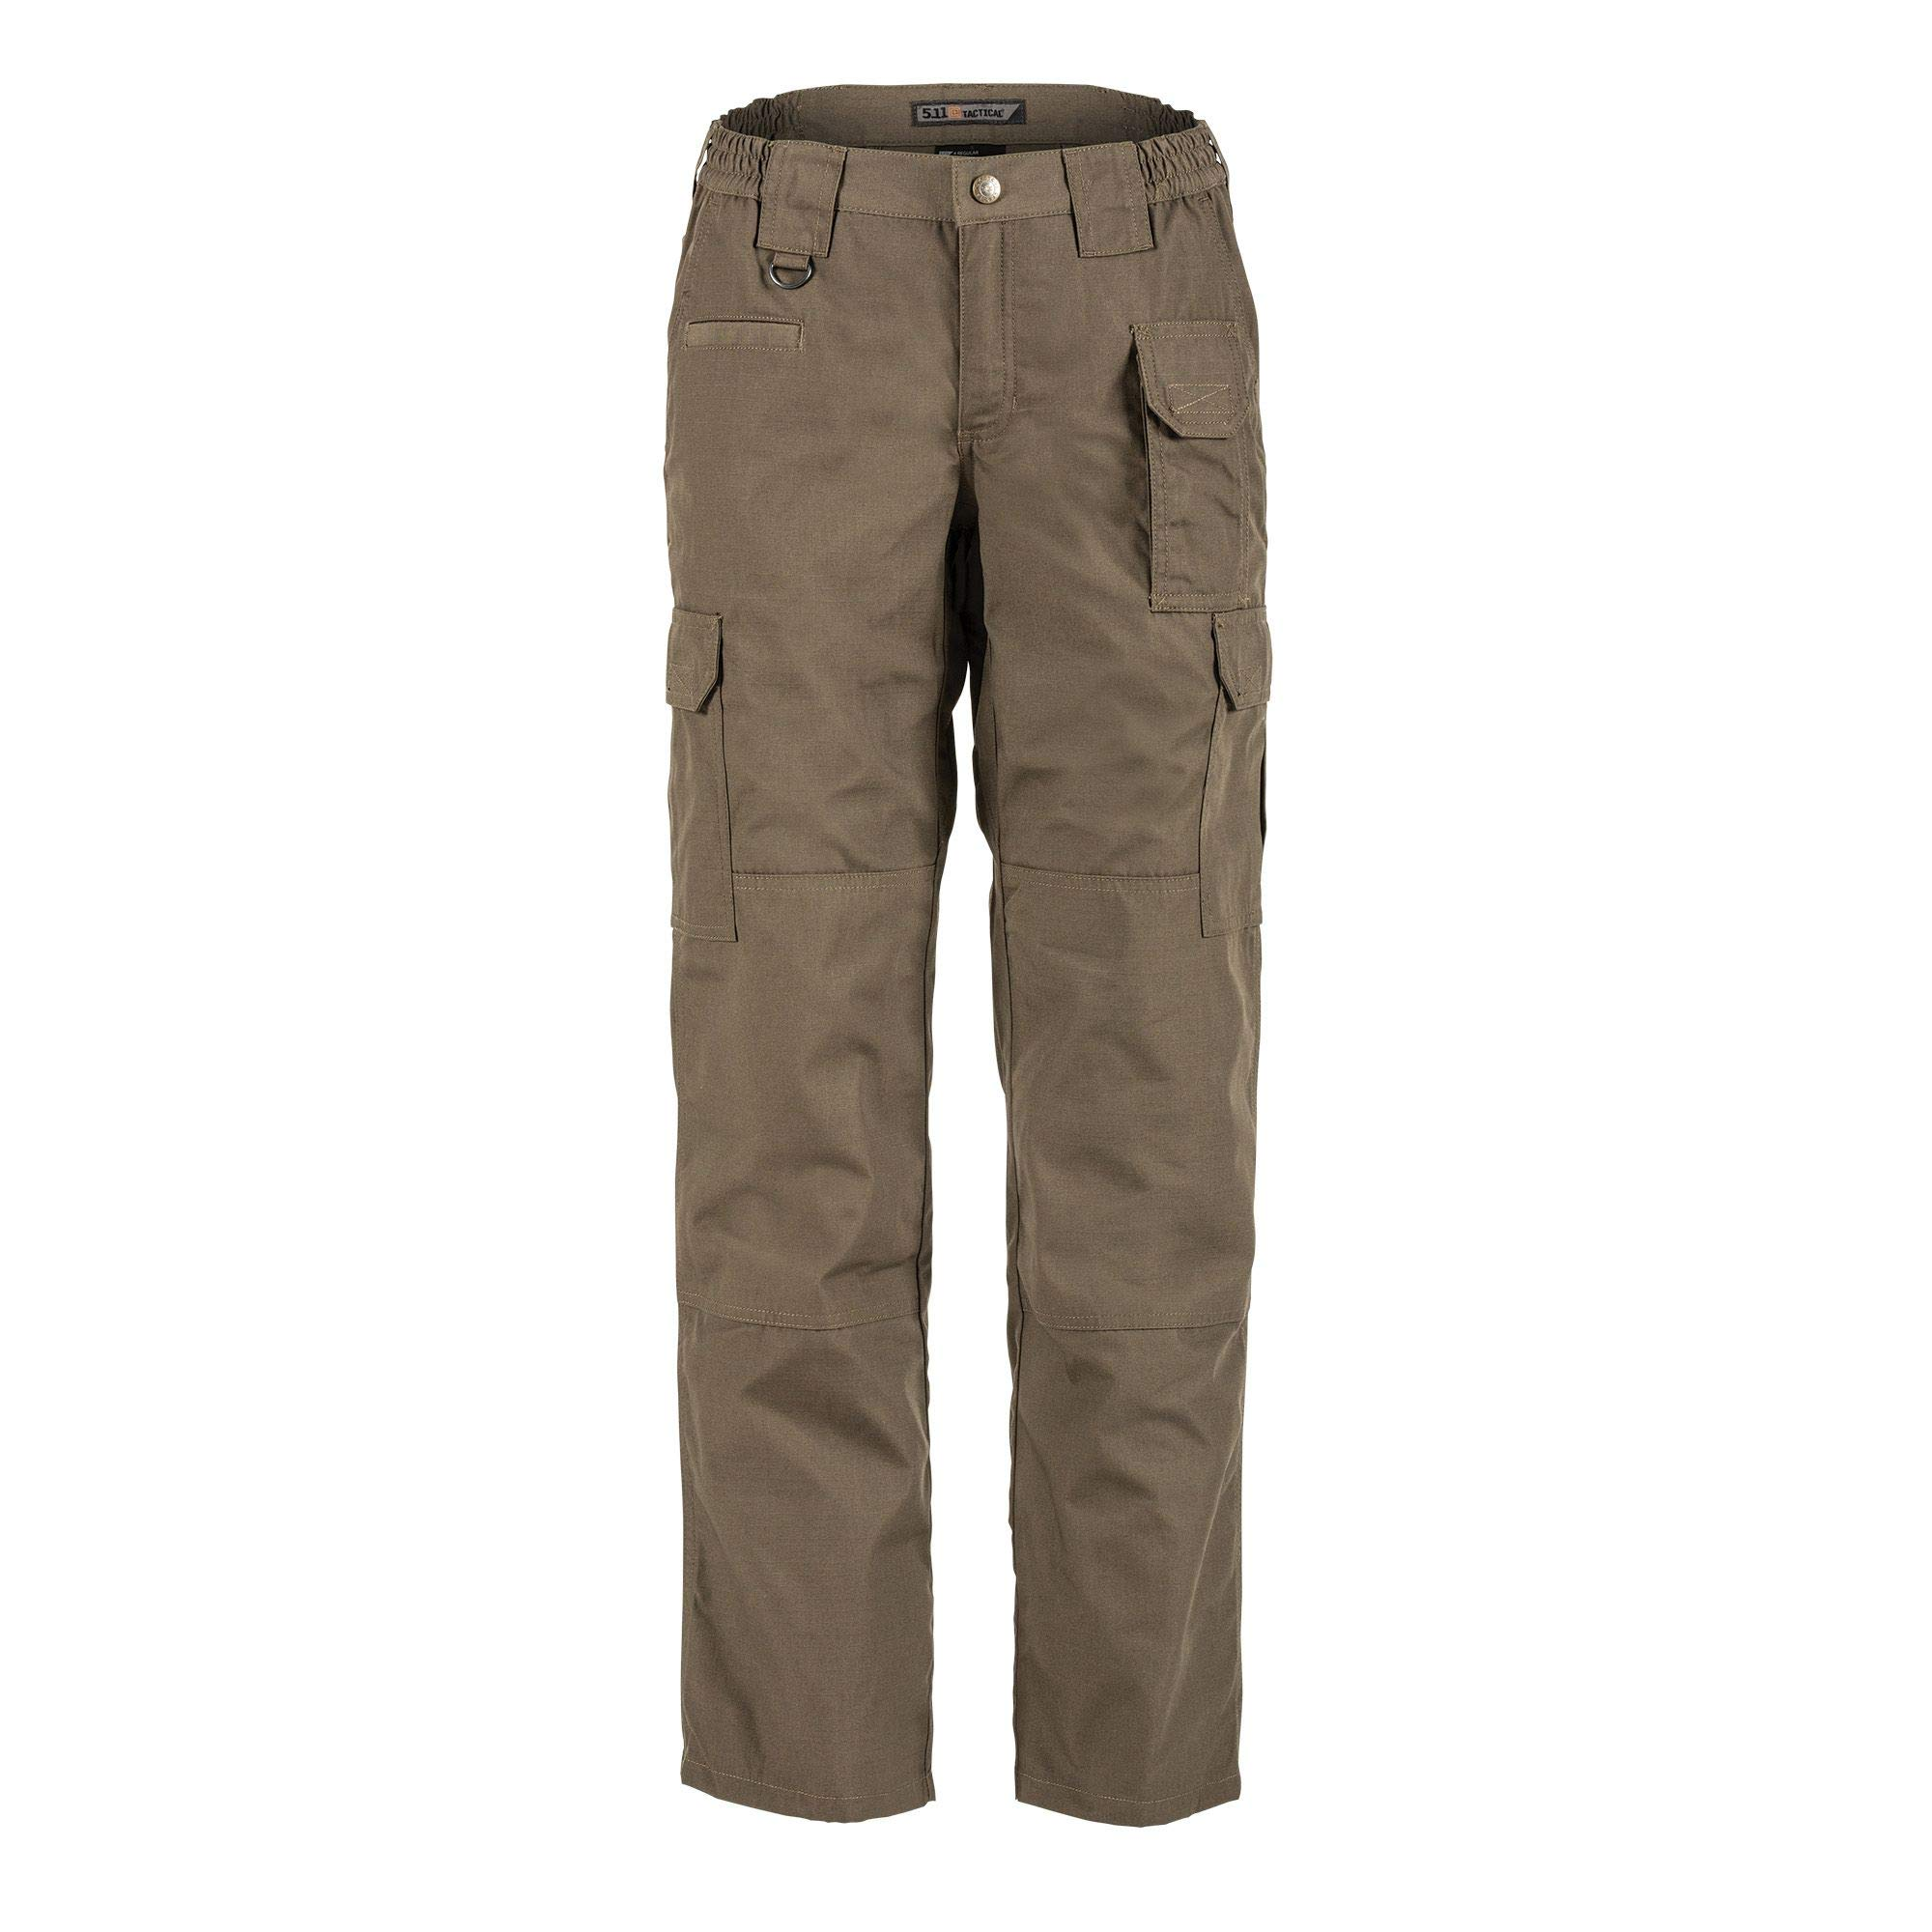 5.11 Women's Taclite PRO Tactical Pants, Style 64360, Tundra, 2/Long